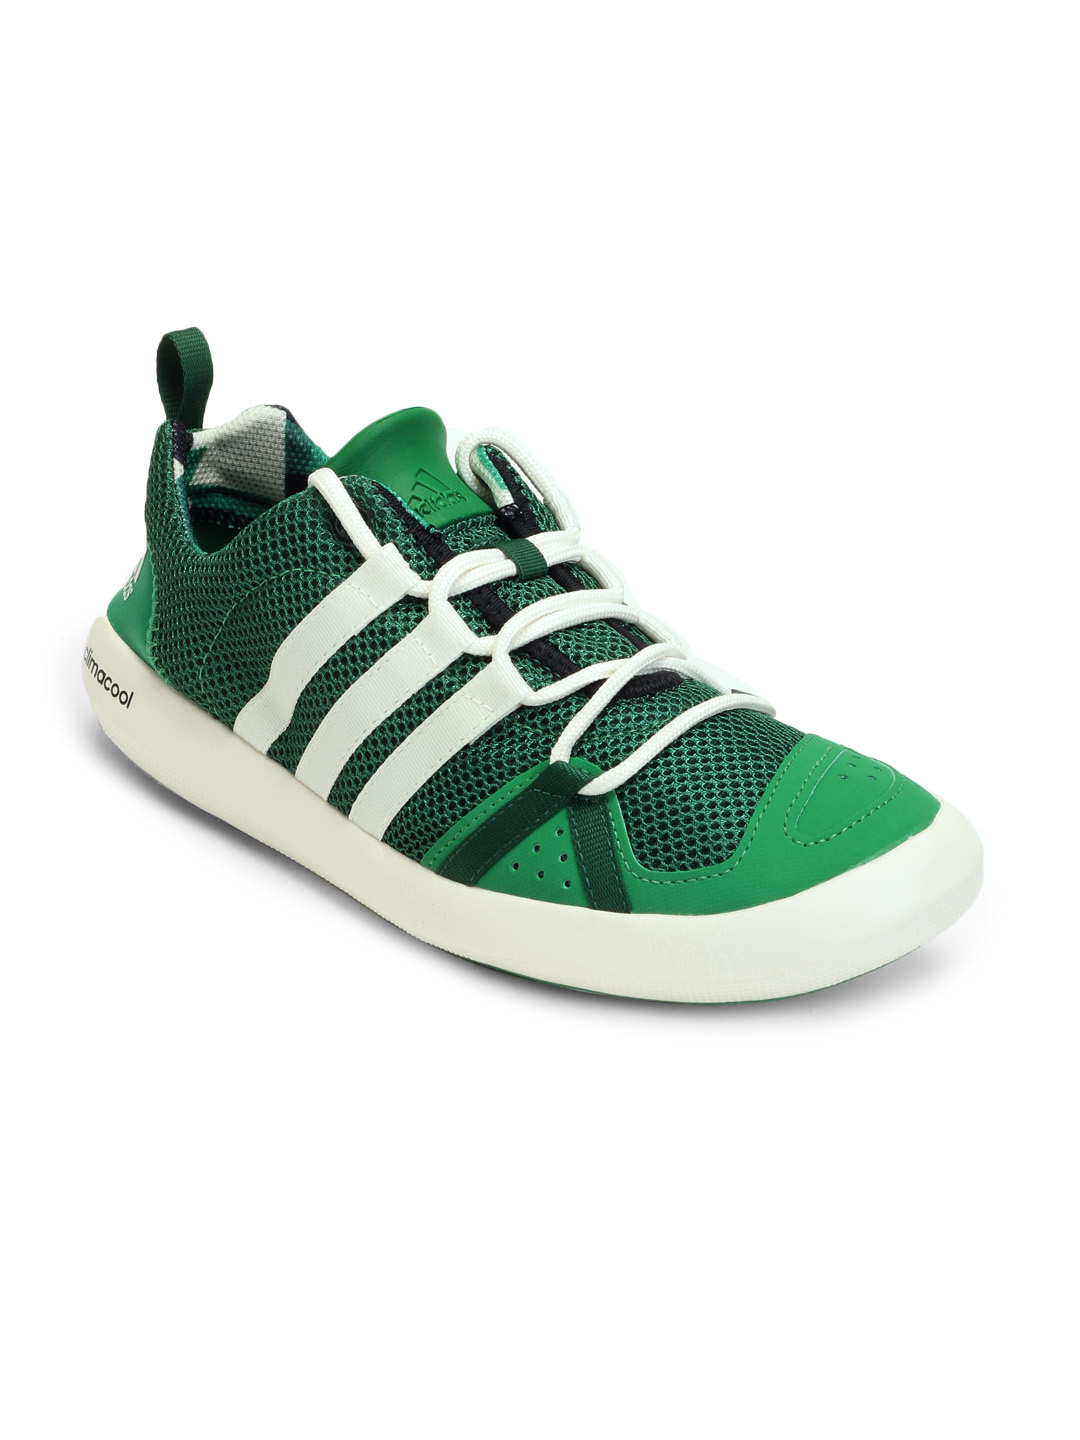 Adidas Unisex Green Shoes